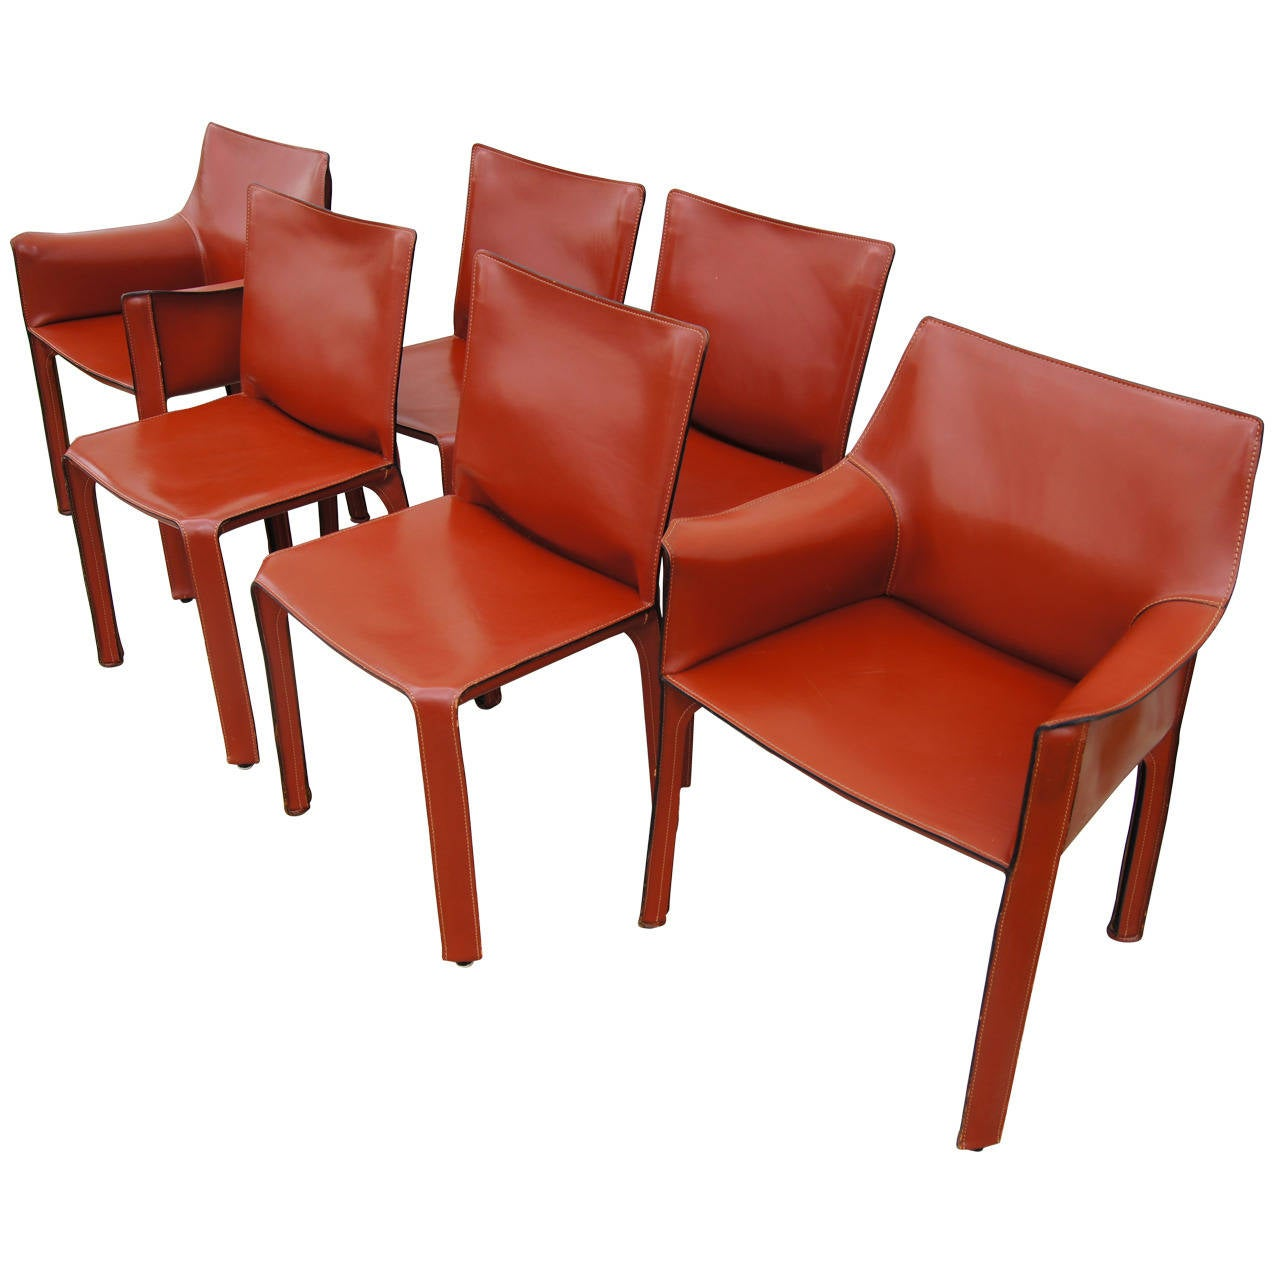 Set Of Six CAB 412 And 413 Dining Chairs By Mario Bellini